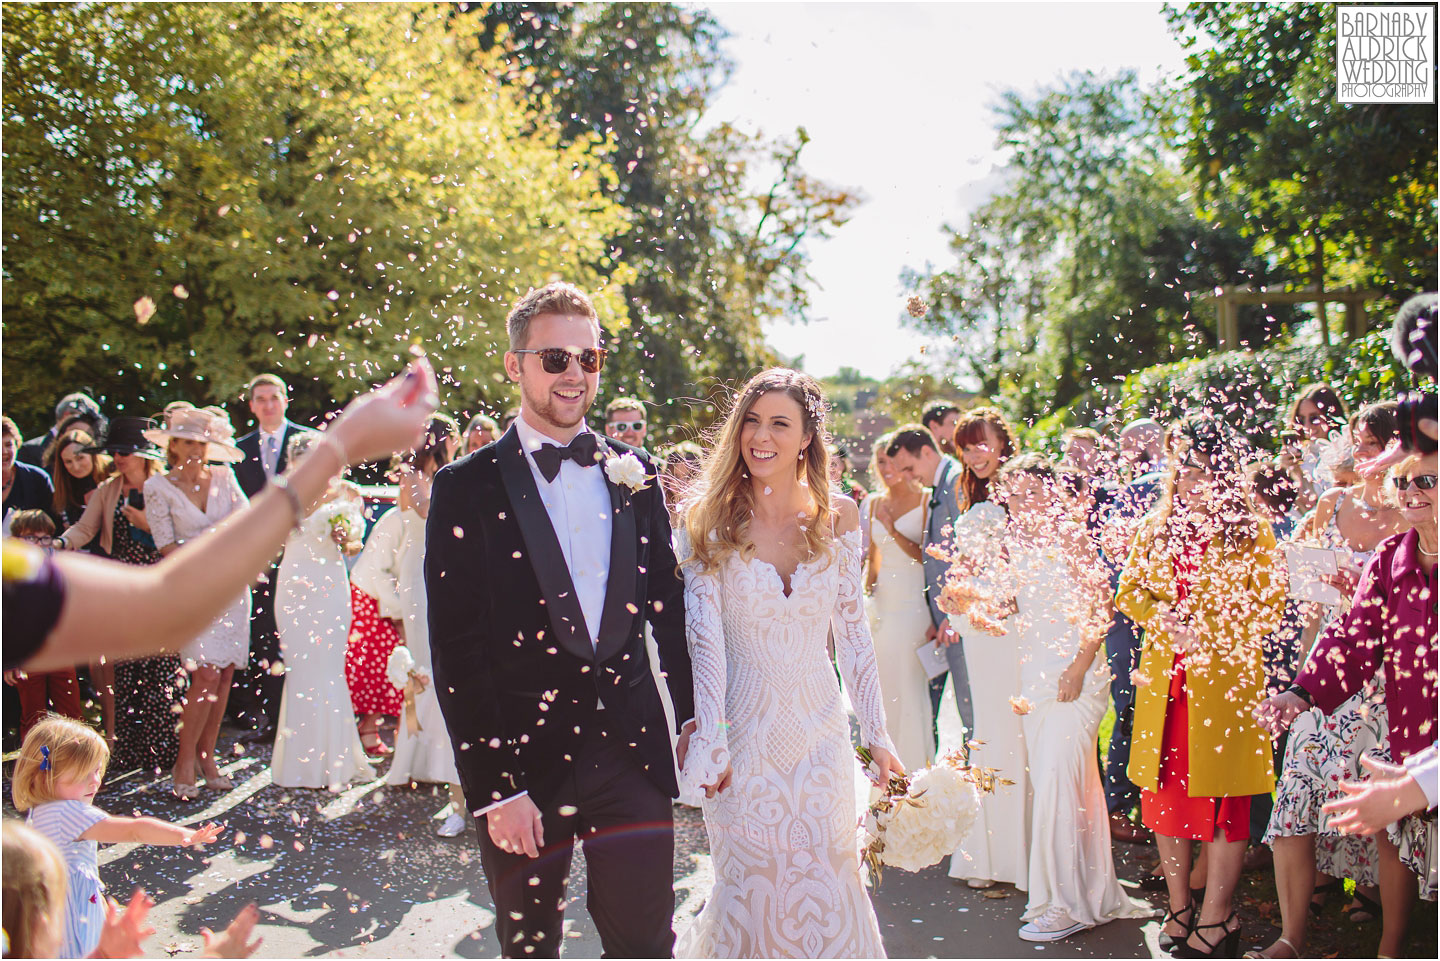 Confetti shot at Hornington Manor, Hornington Manor Wedding Photography, Hornington Manor Wedding Photographer, Yorkshire Wedding, Yorkshire Wedding Photographer, York Luxury Barn Wedding Venue, Yorkshire farmhouse Wedding Barn